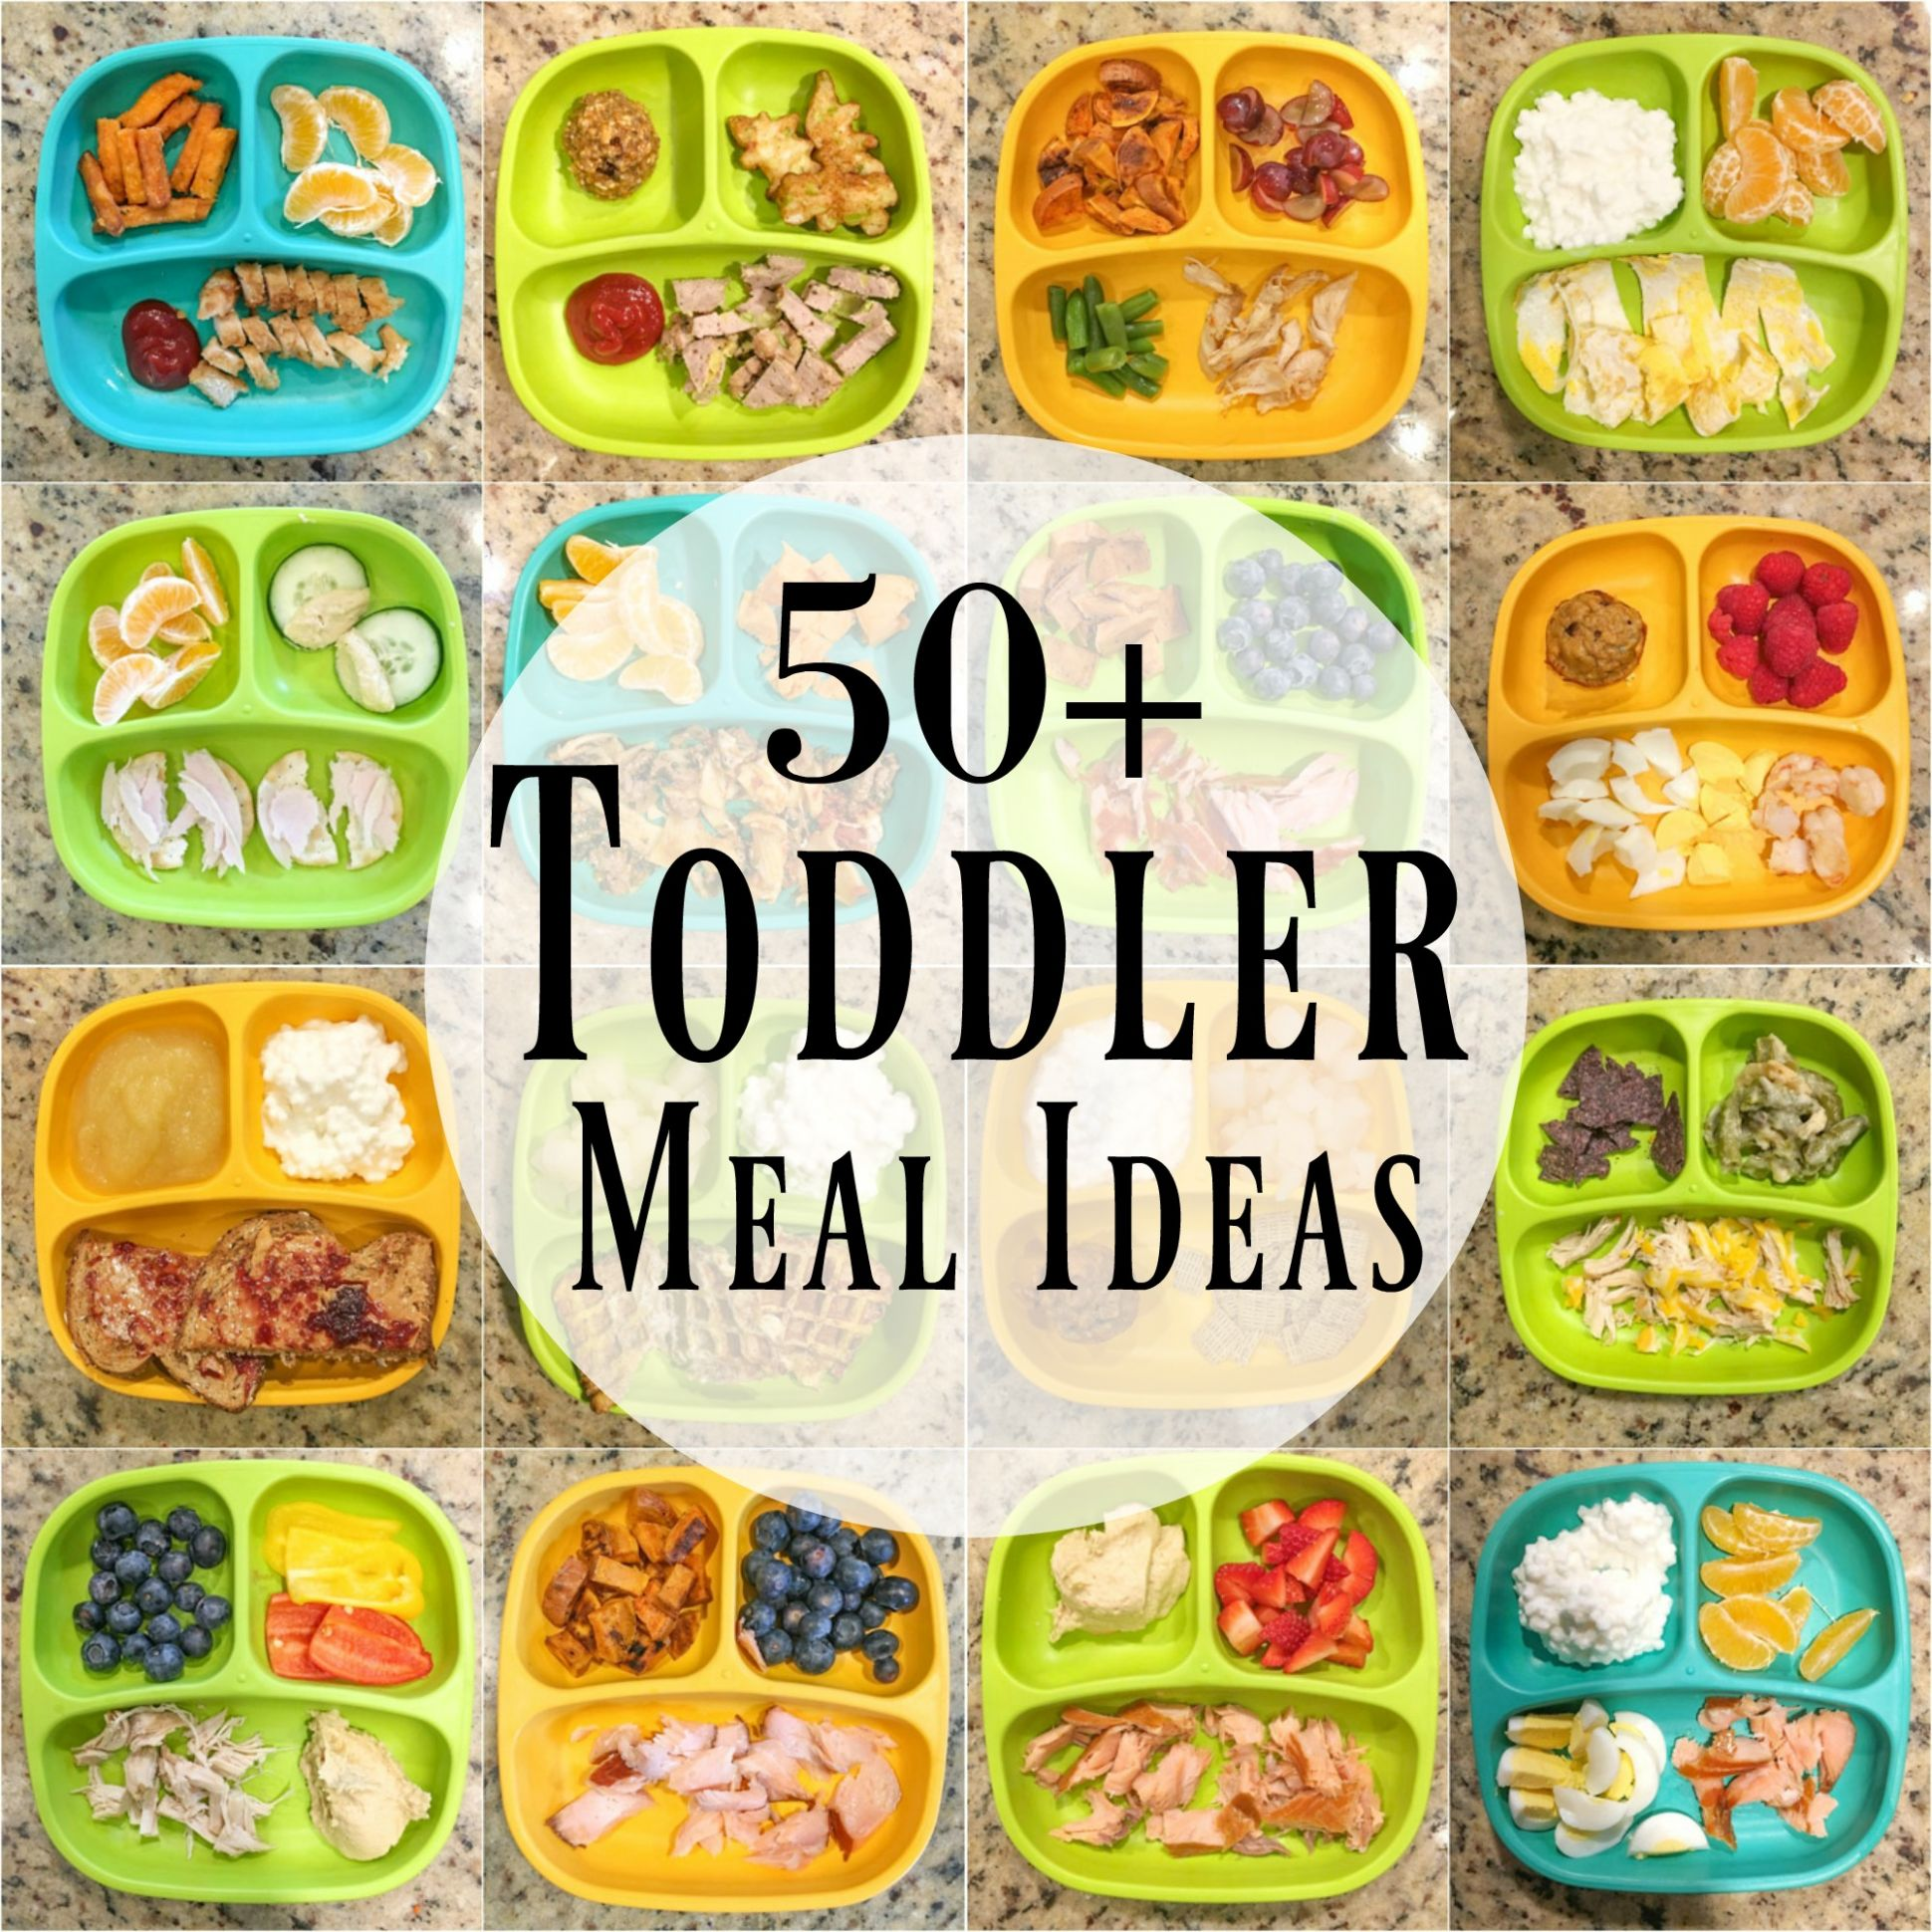 11 Healthy Toddler Meal Ideas | The Lean Green Bean - Healthy Recipes Kid Approved